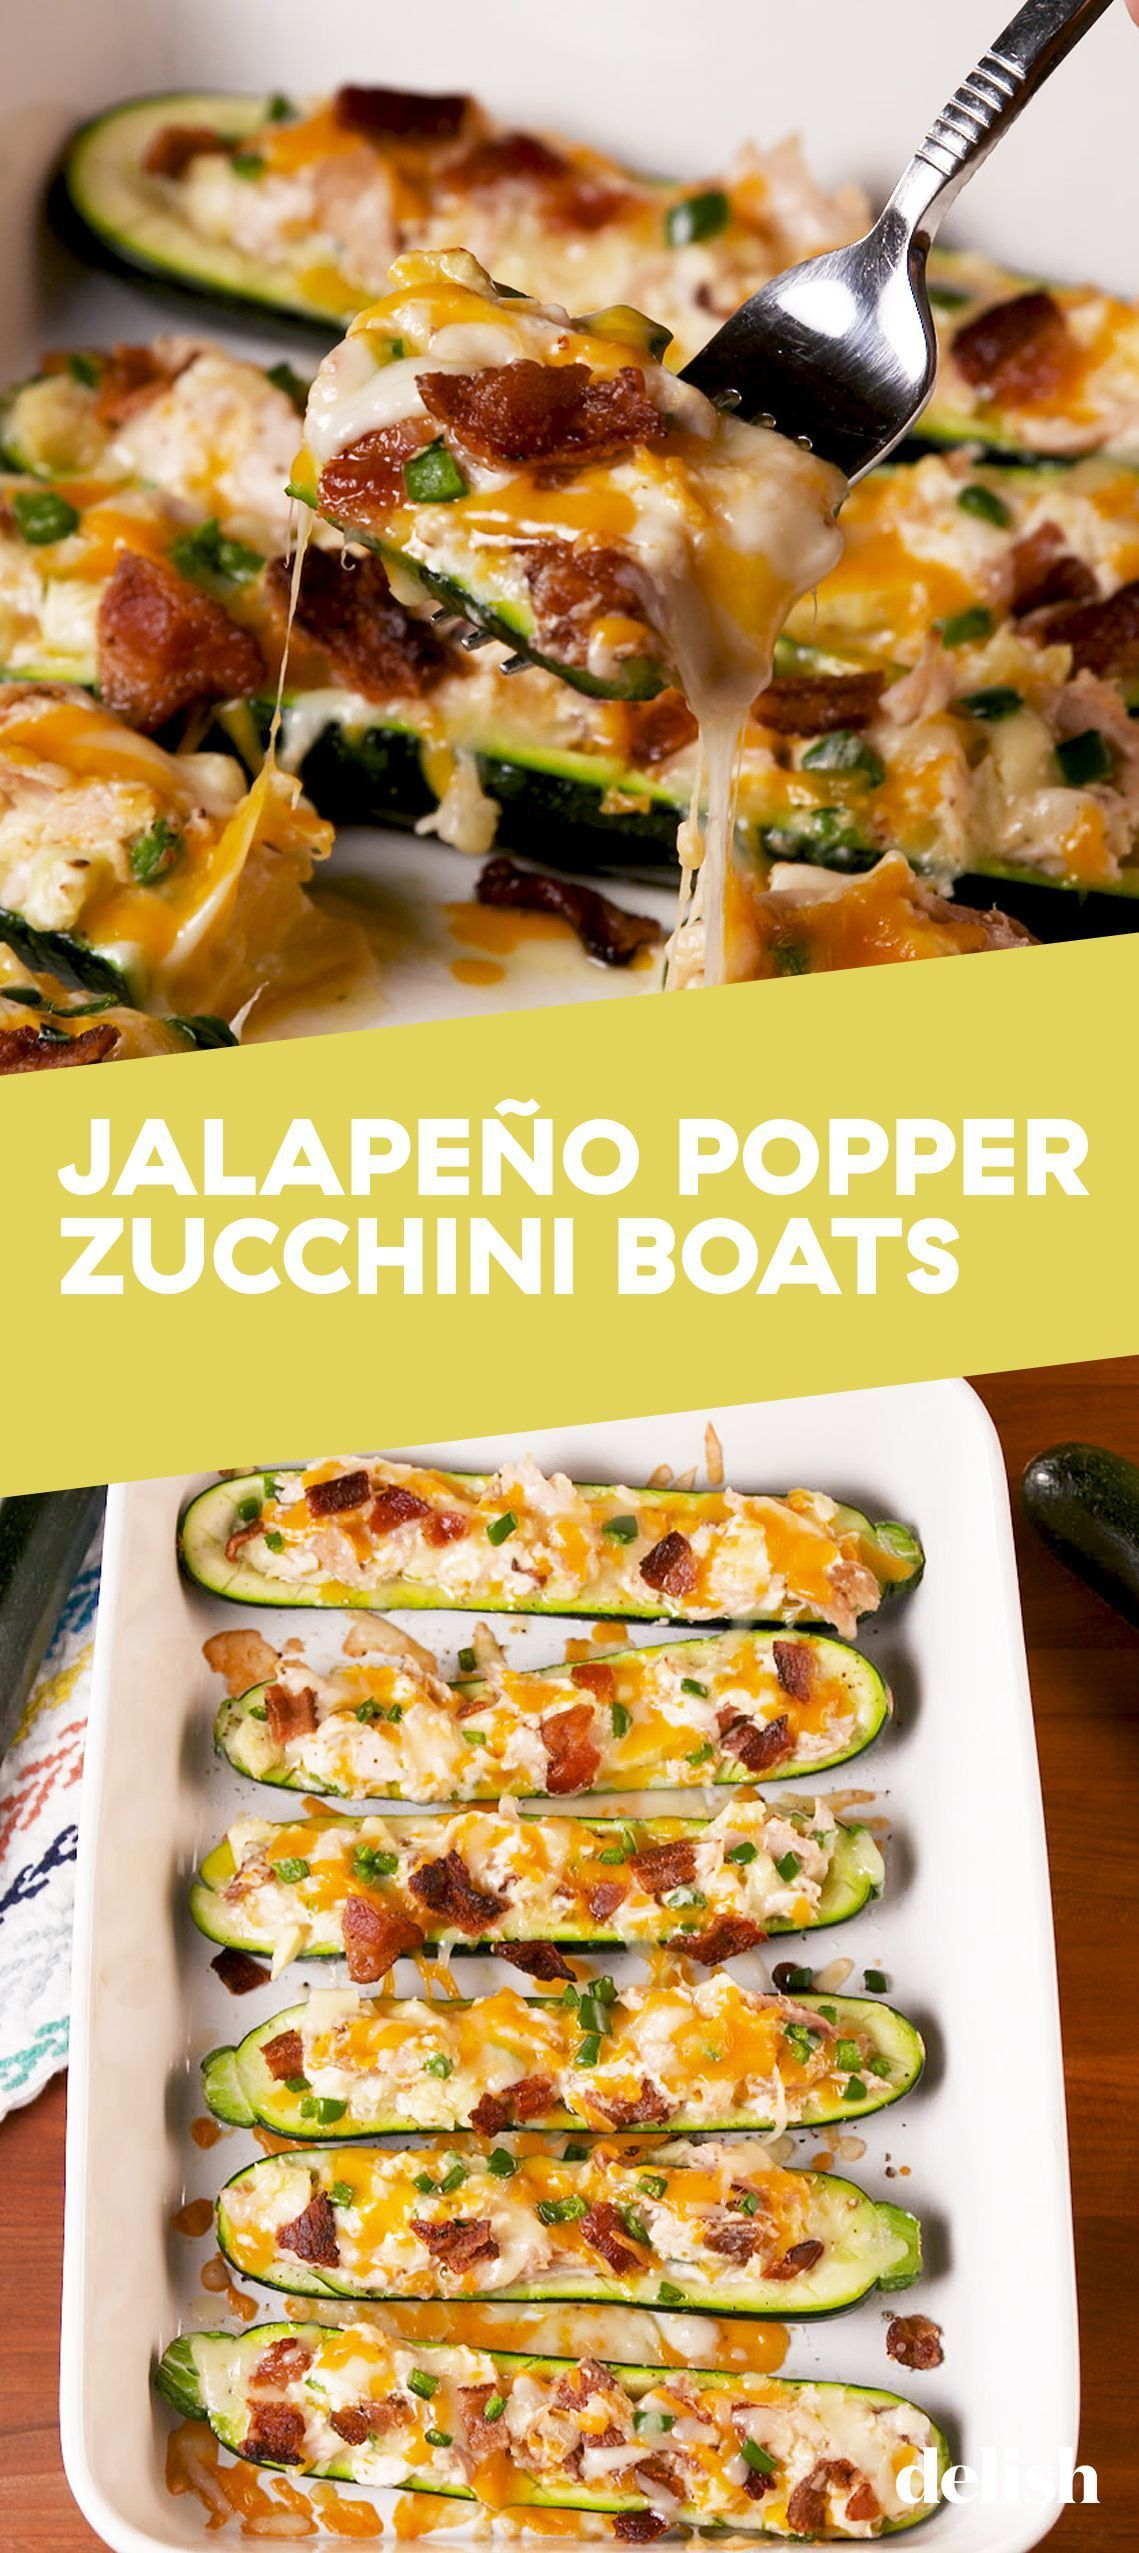 Jalapeño Popper Zucchini Boats -  Jalapeño Popper Zucchini Boats Is A Low-Carb DreamDelish  -